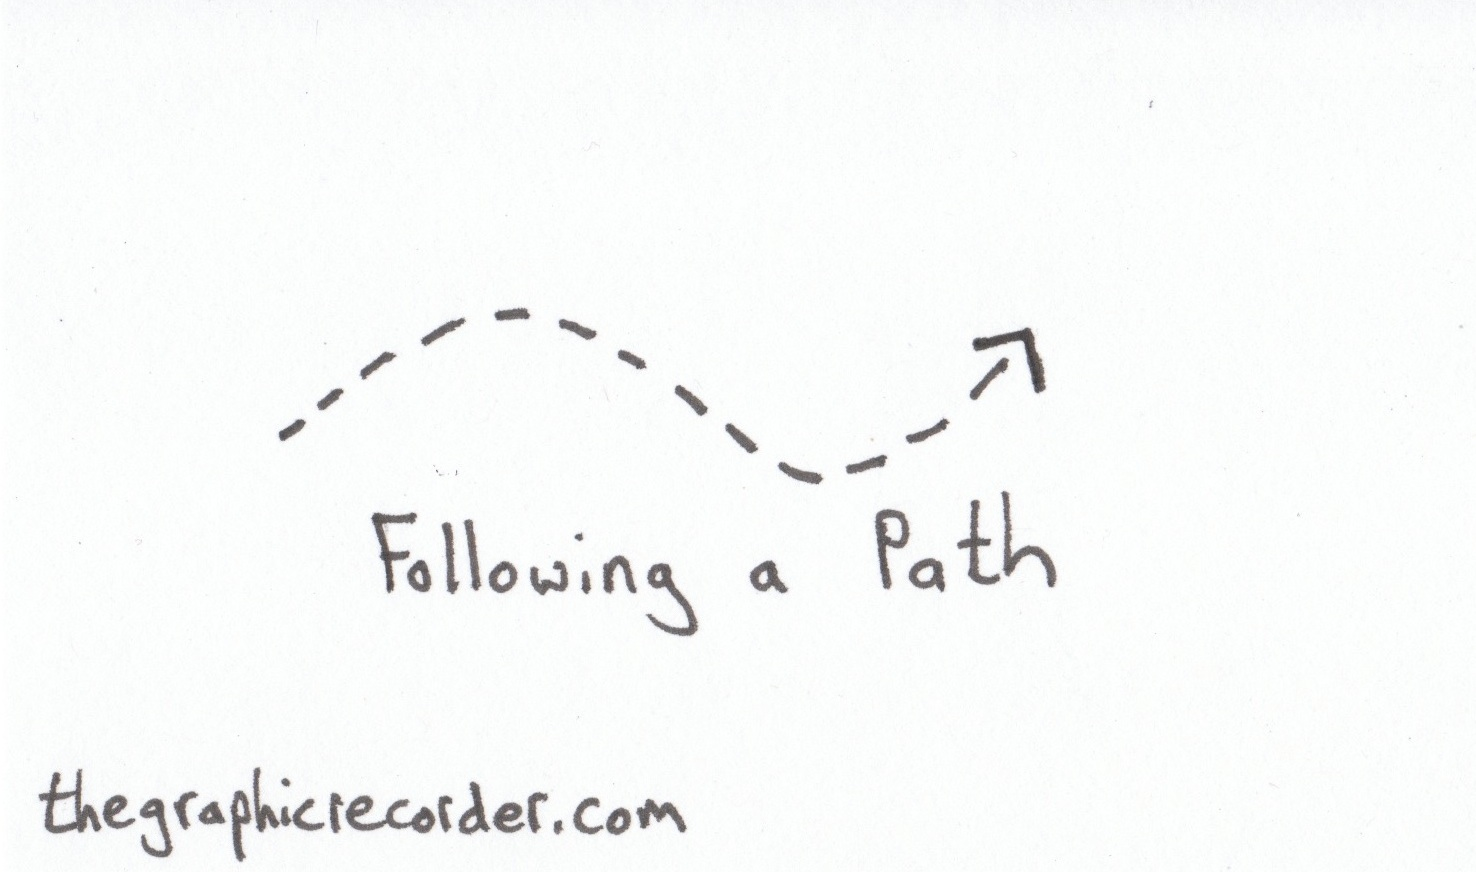 The Graphic Recorder - Visual Vocabulary - Arrows - Following a Path